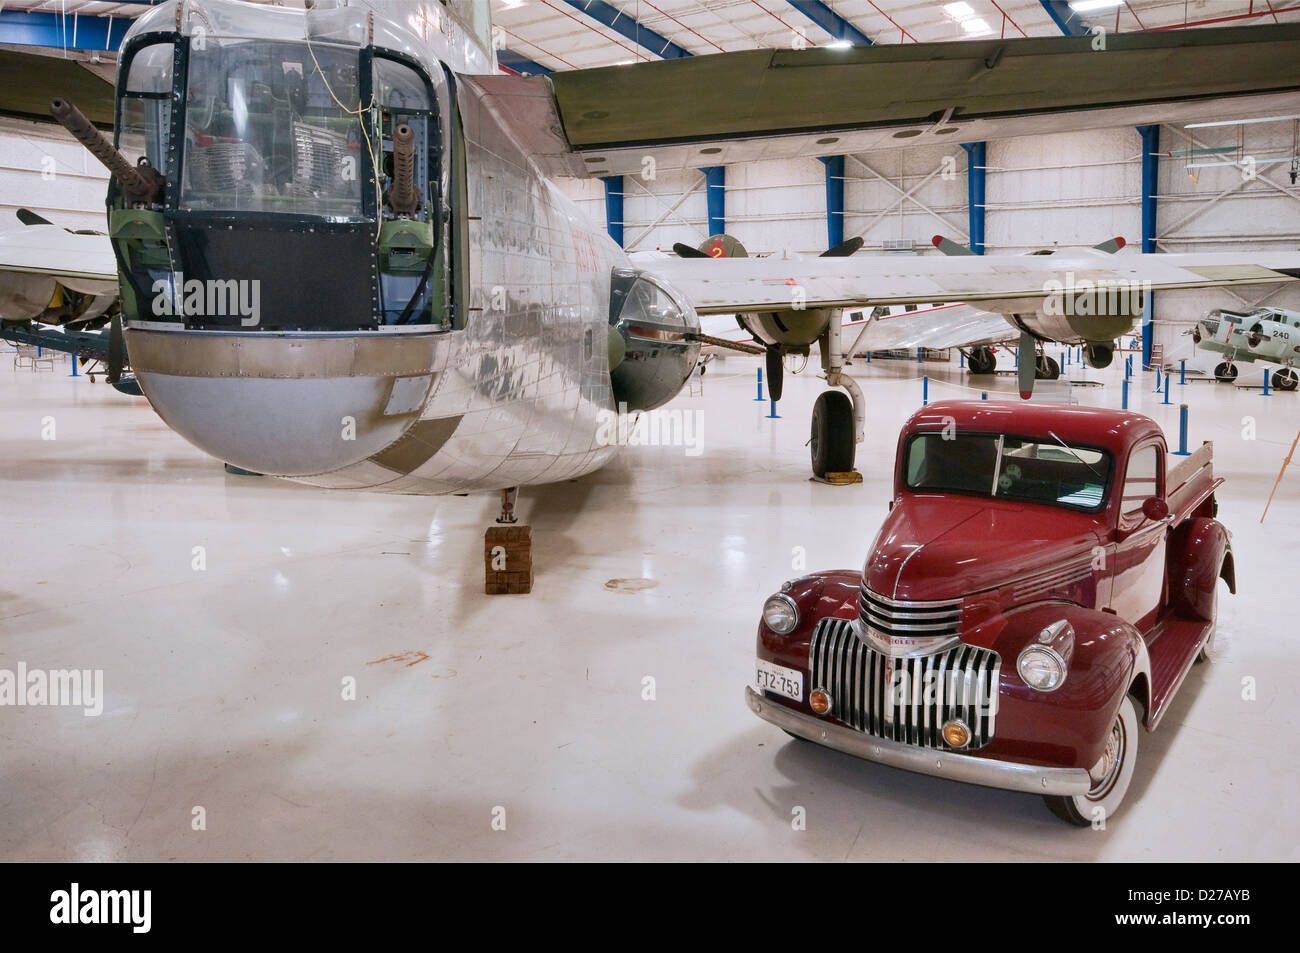 Tail, turret of Consolidated PB4Y-2 Privateer Navy Bomber and 1941 Chevrolet truck, Lone Star Flight Museum, Galveston, - Stock Image